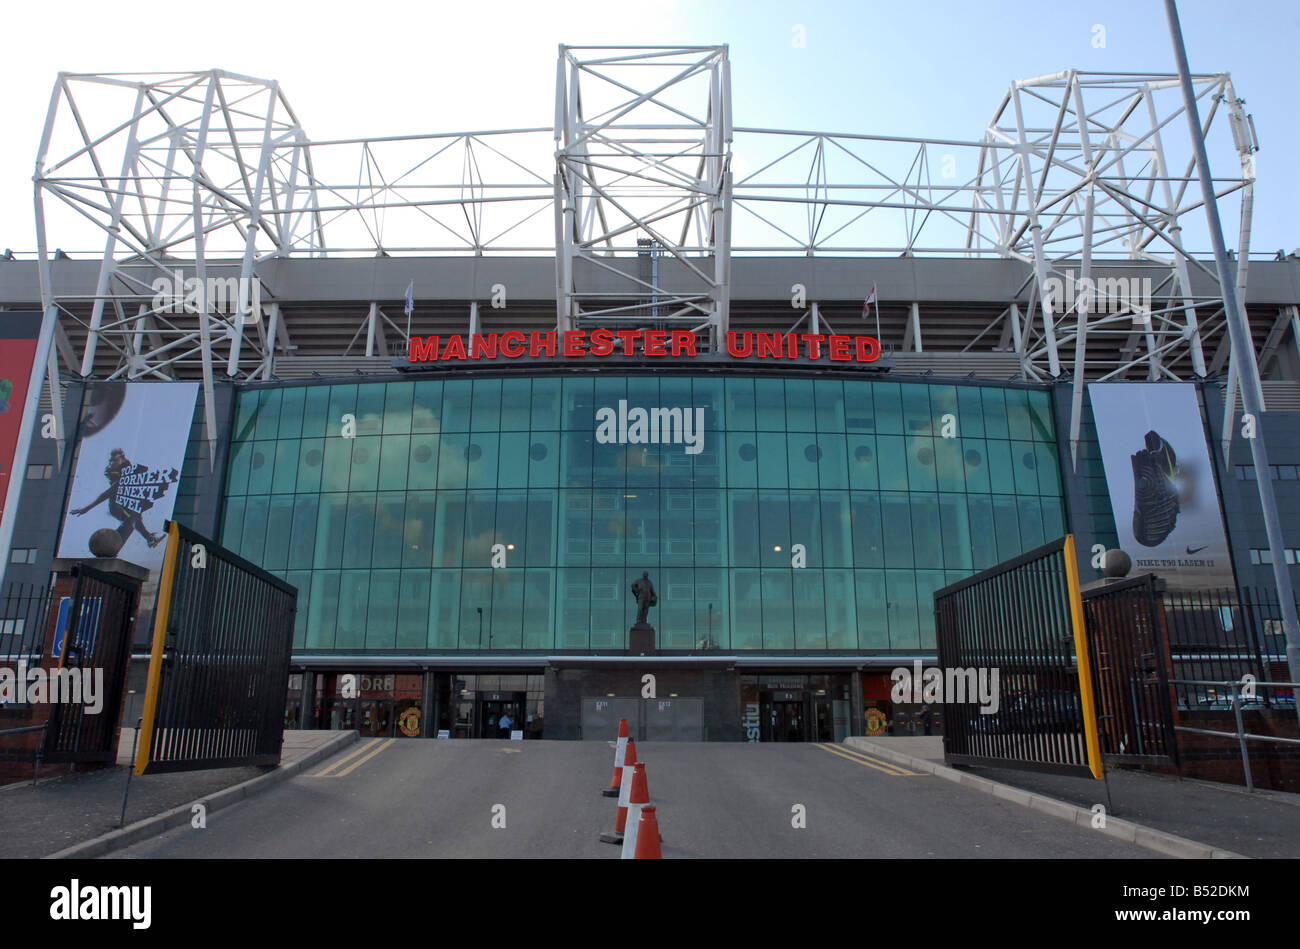 Old trafford manchester united football club mufc - Stock Image